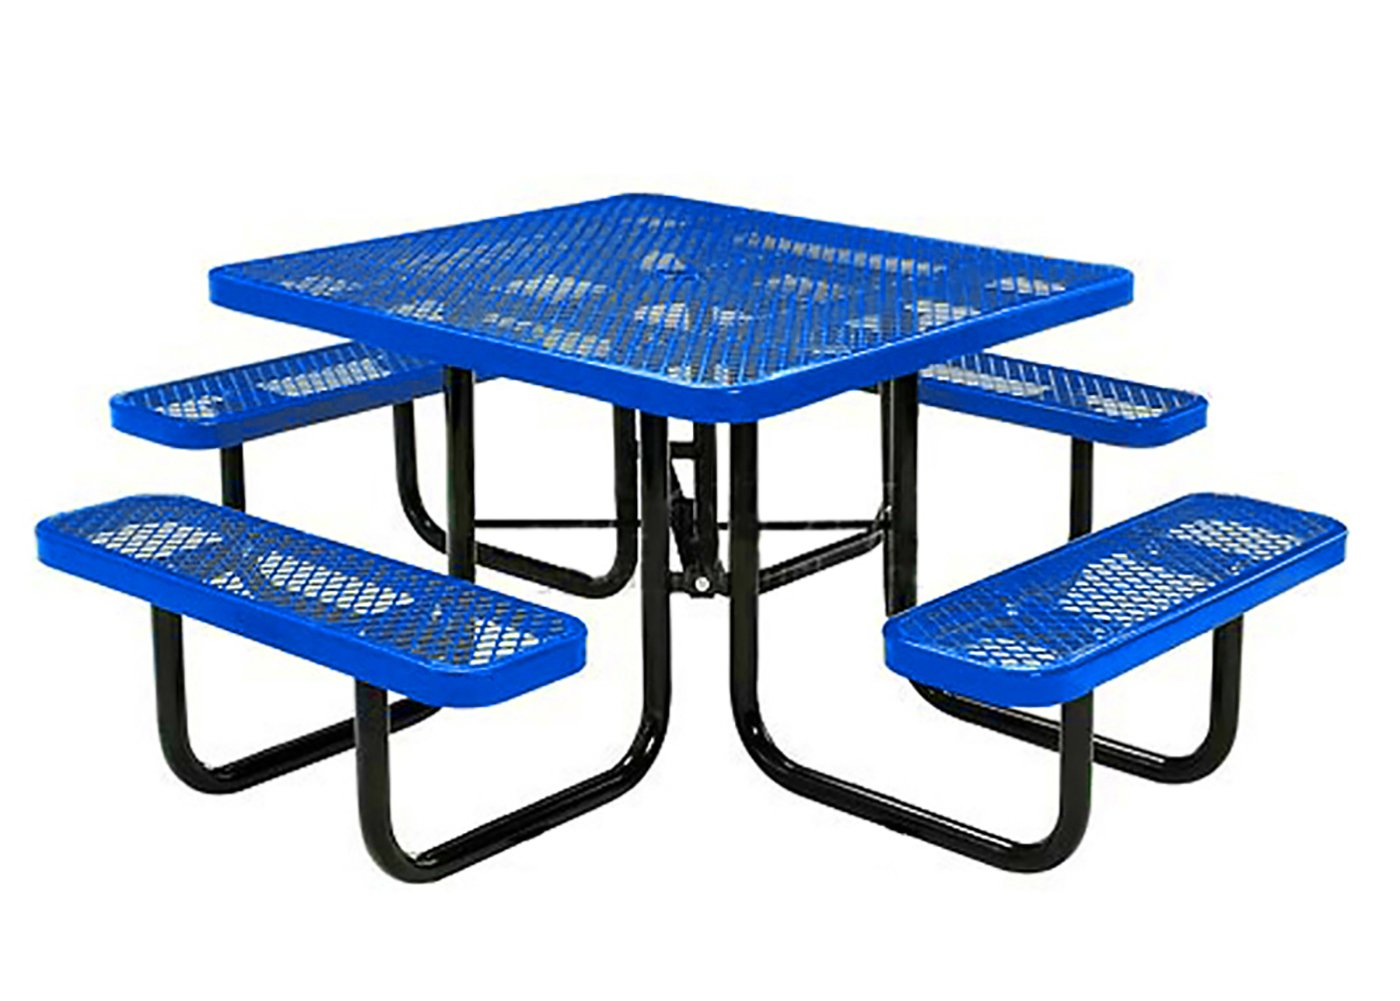 Lifeyard 46'' Expanded Metal Mesh Square Picnic Table with Seats Steel Frame for Commercial (Blue)